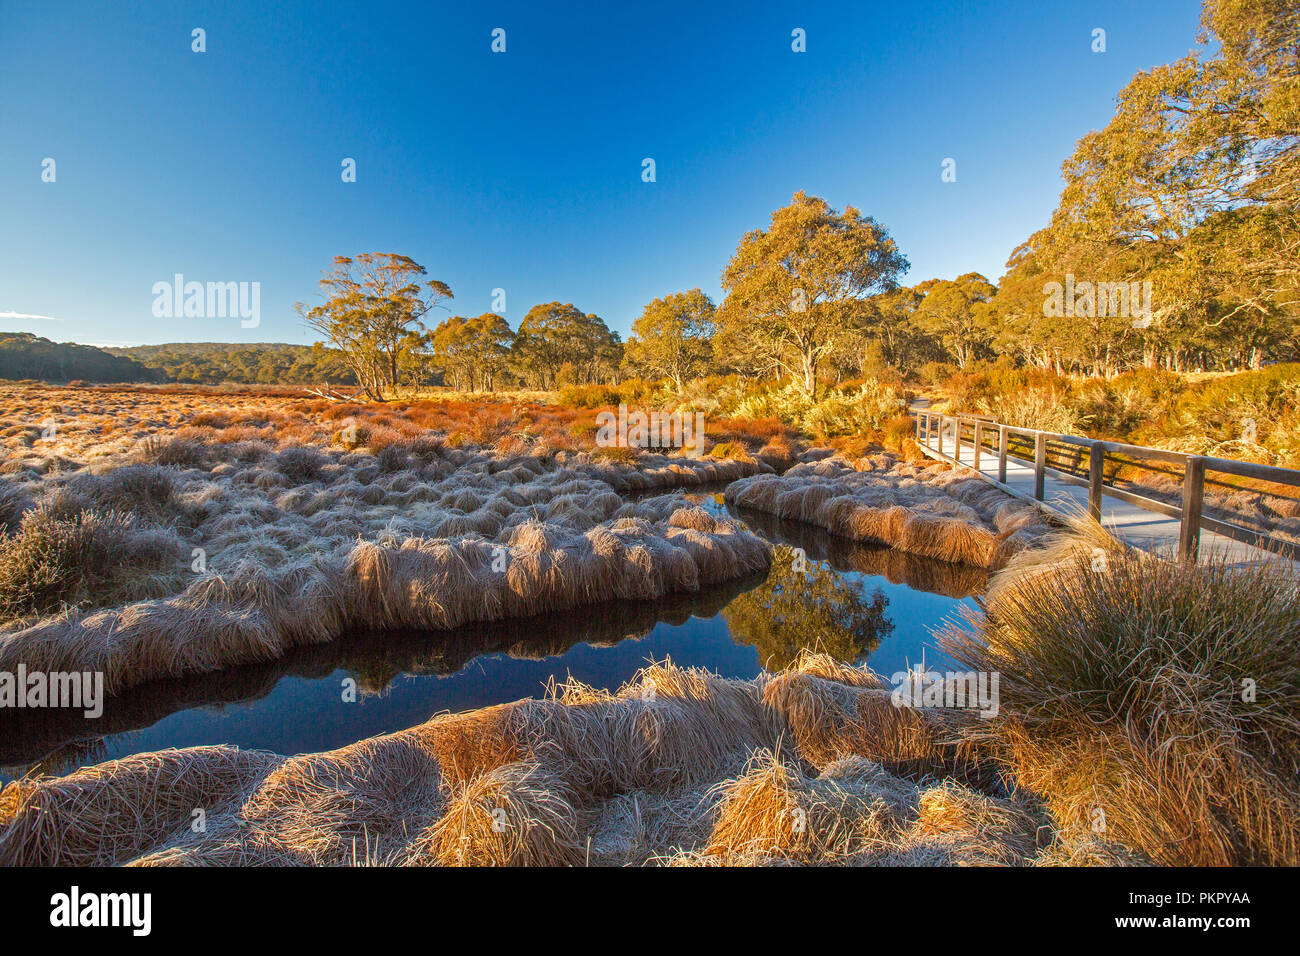 Landscape of golden frost-cloaked grasses of Polblue swamp with adjacent forests & blue sky reflected in stream at Barrington Tops National Park NSW - Stock Image